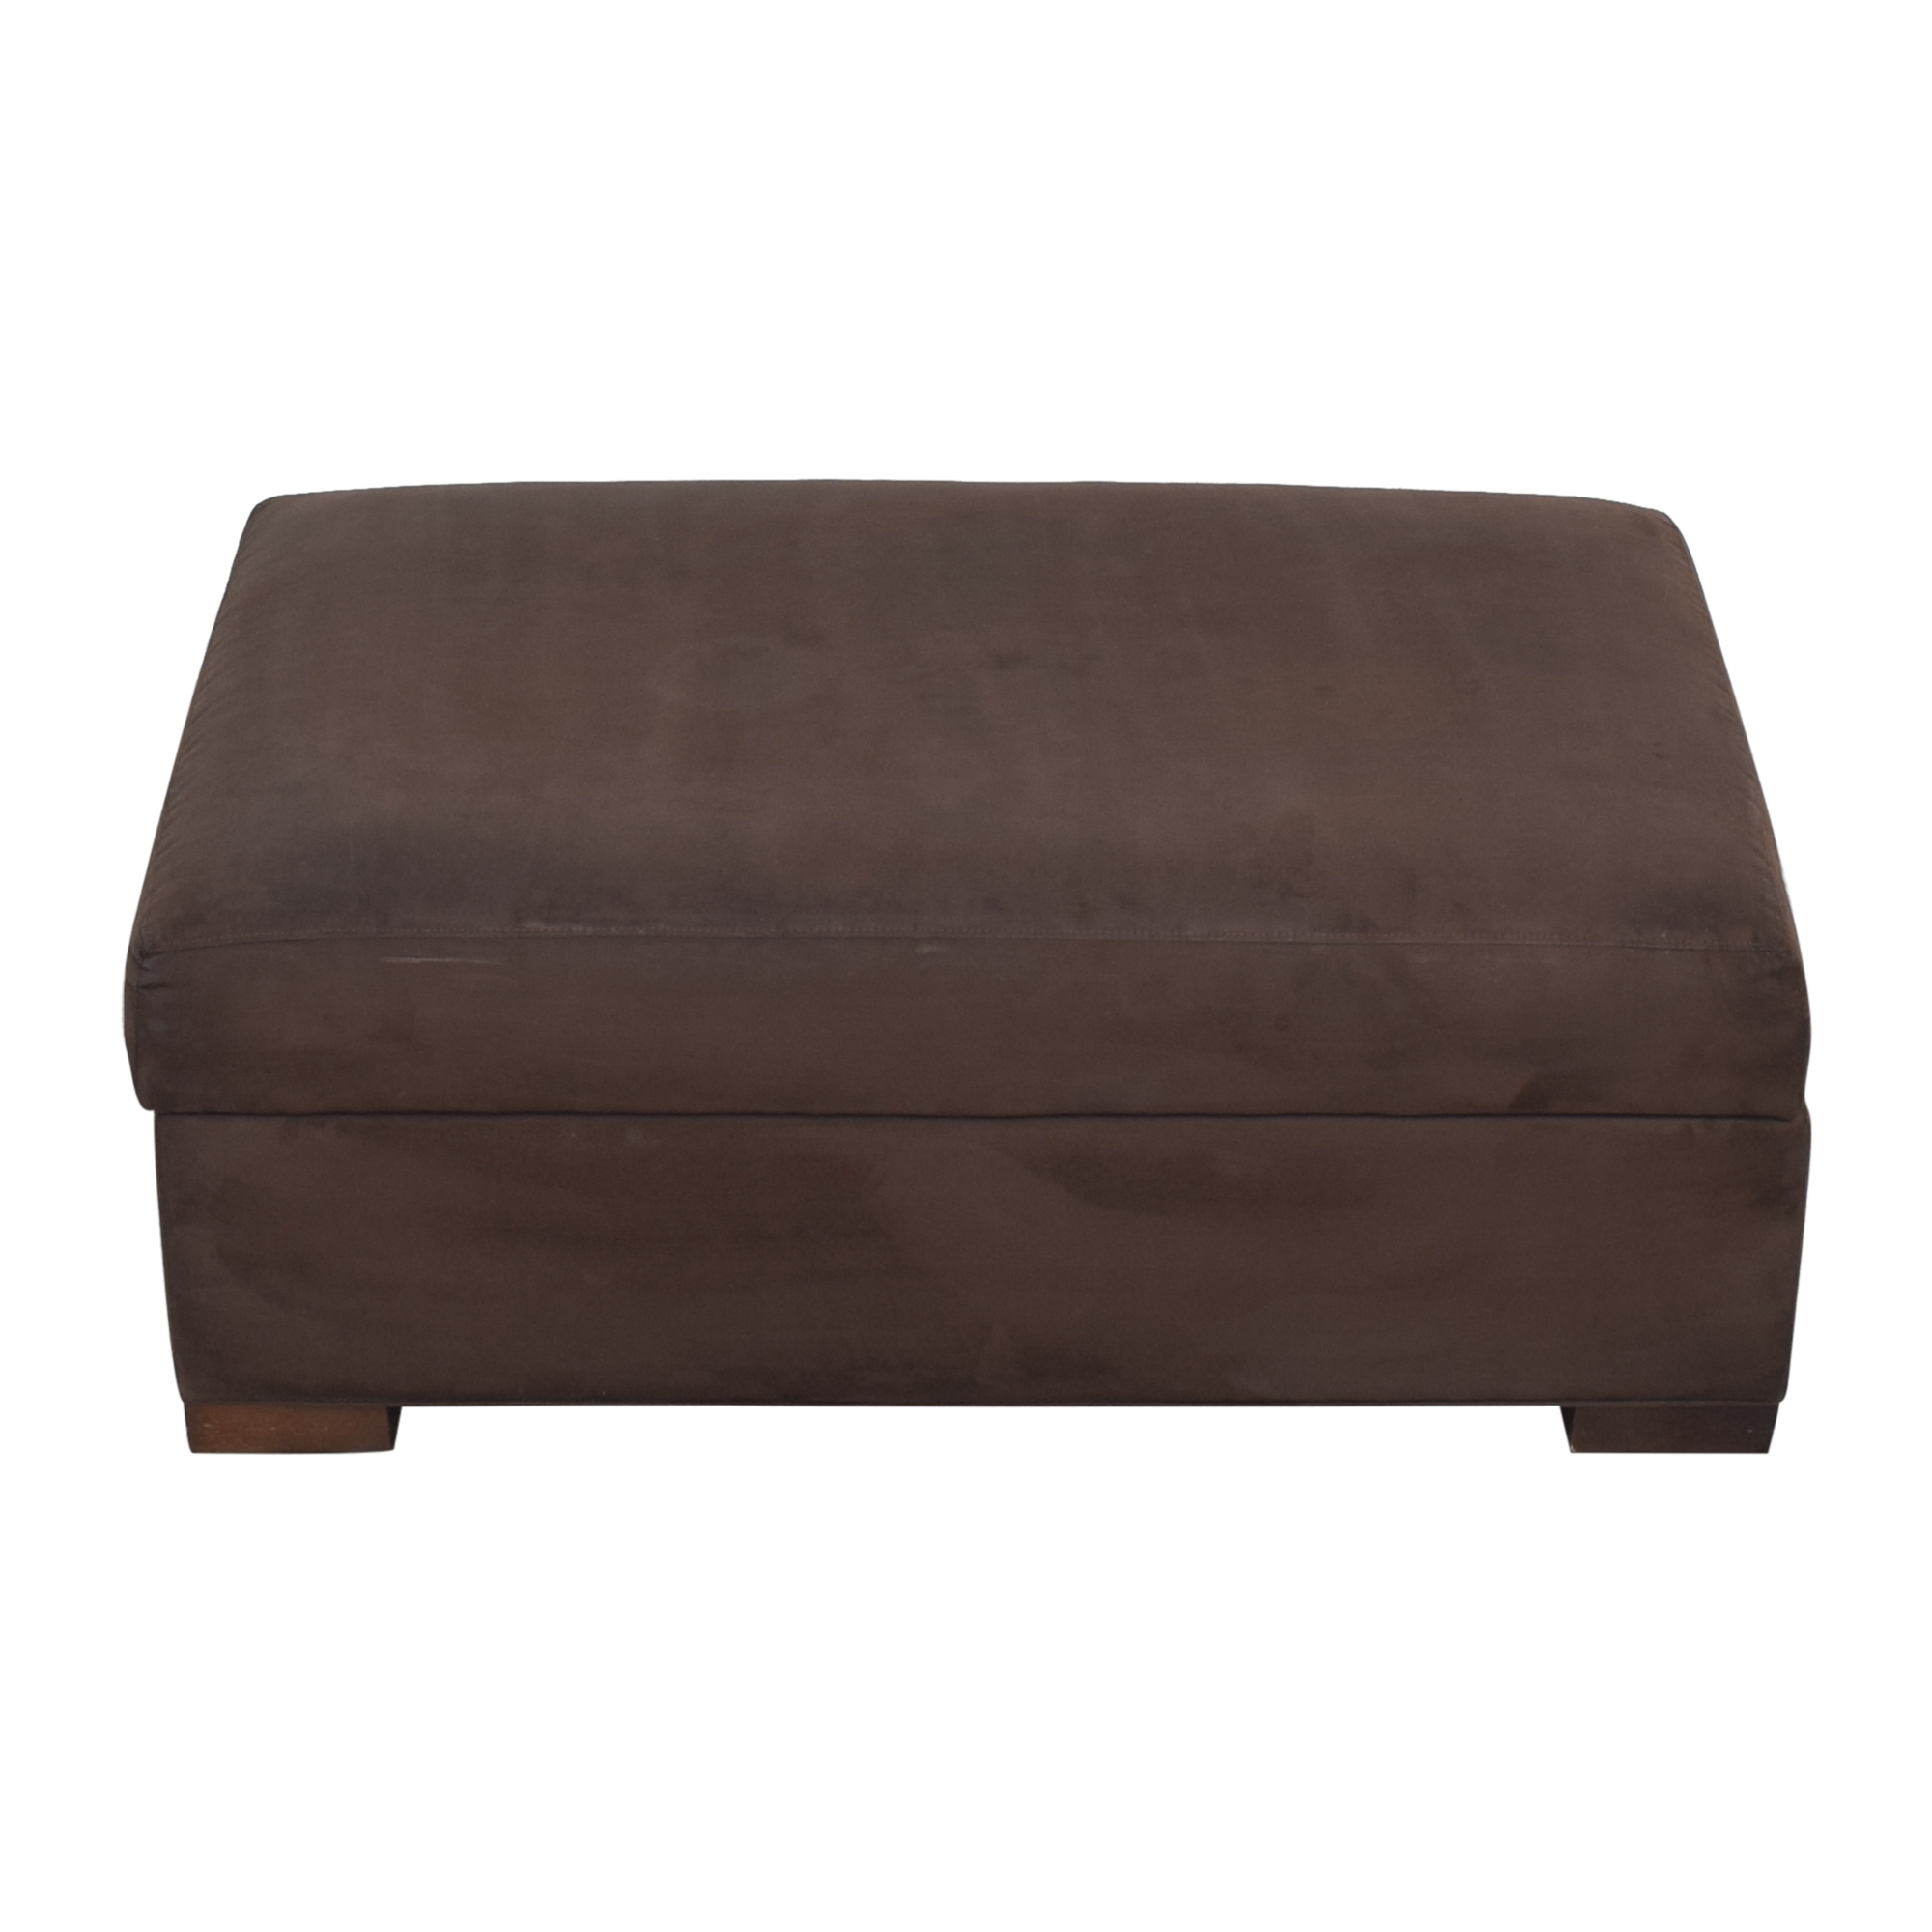 Crate & Barrel Axis II Ottoman and a Half / Ottomans